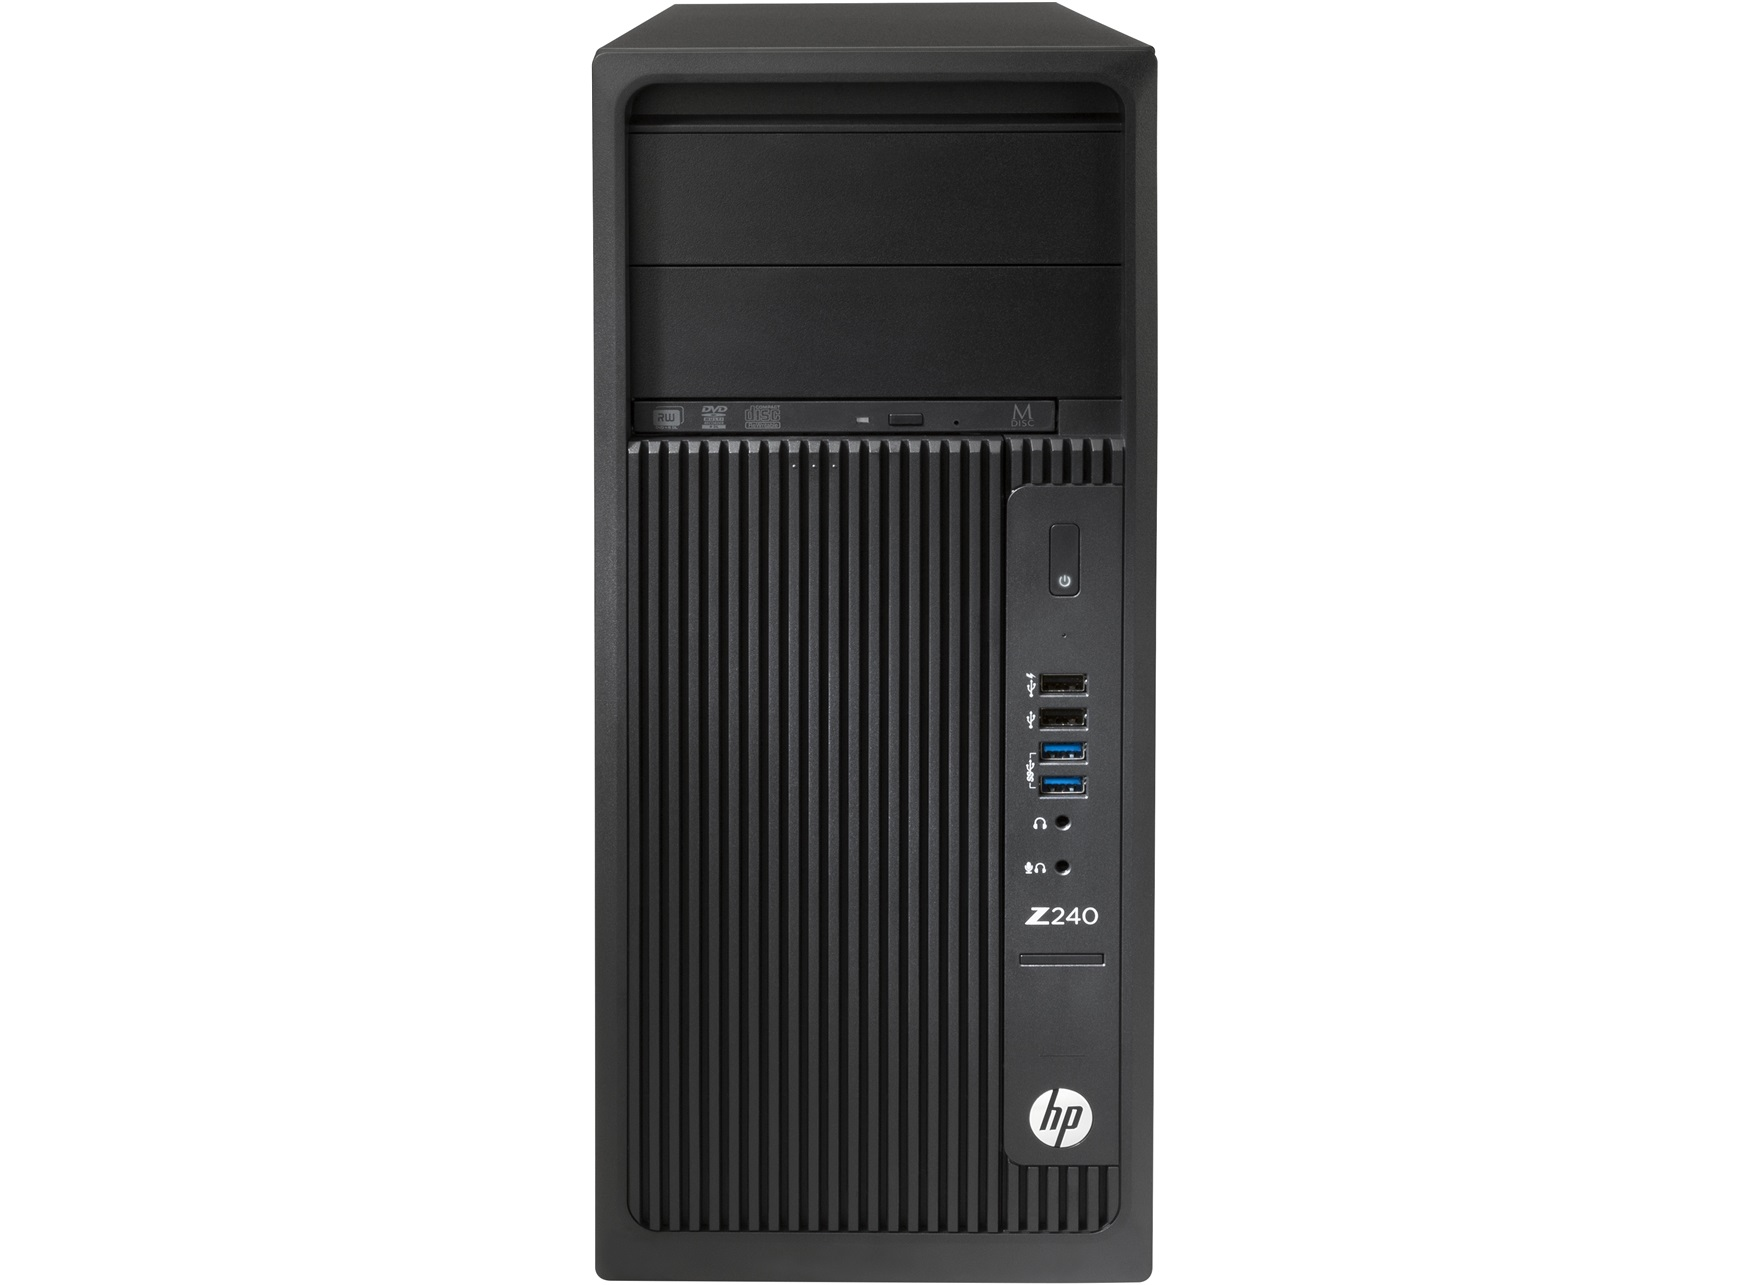 HP Z240 TWR Intel i7-6700 3.4GHz/ 8GB DDR4-2133 nECC (2x4GB)/256GB SSD m.2/Intel HD GFX 530/Win 10 Pro+Win 7 Pro